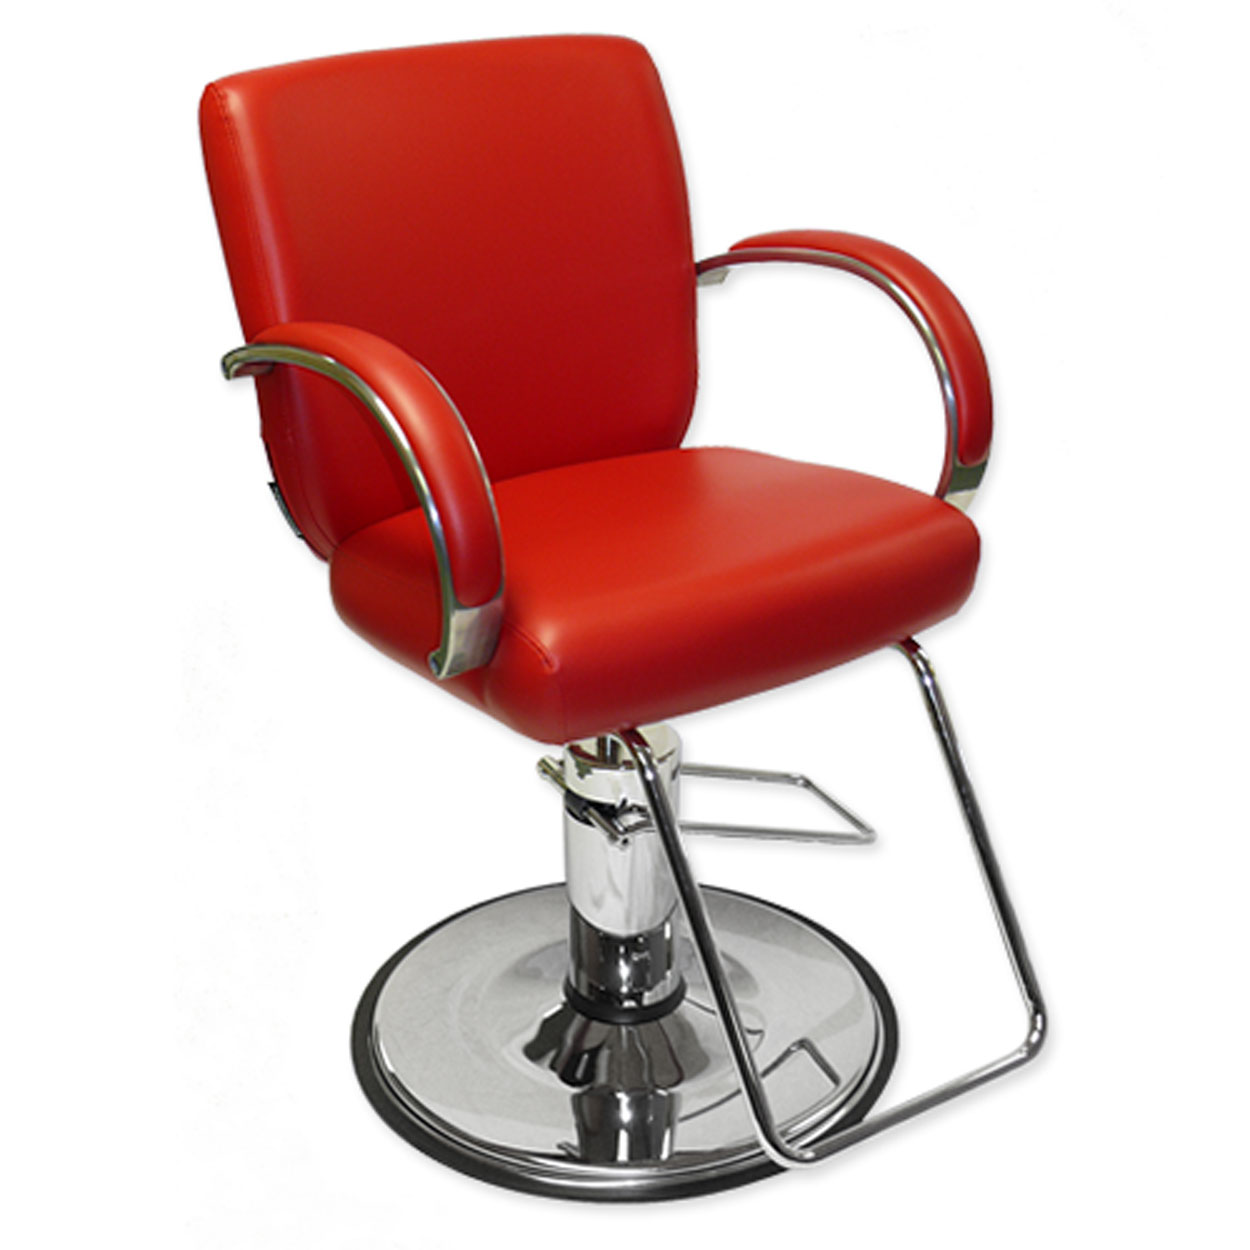 Takara Belmont Odin Styling Chair alternative product image 1